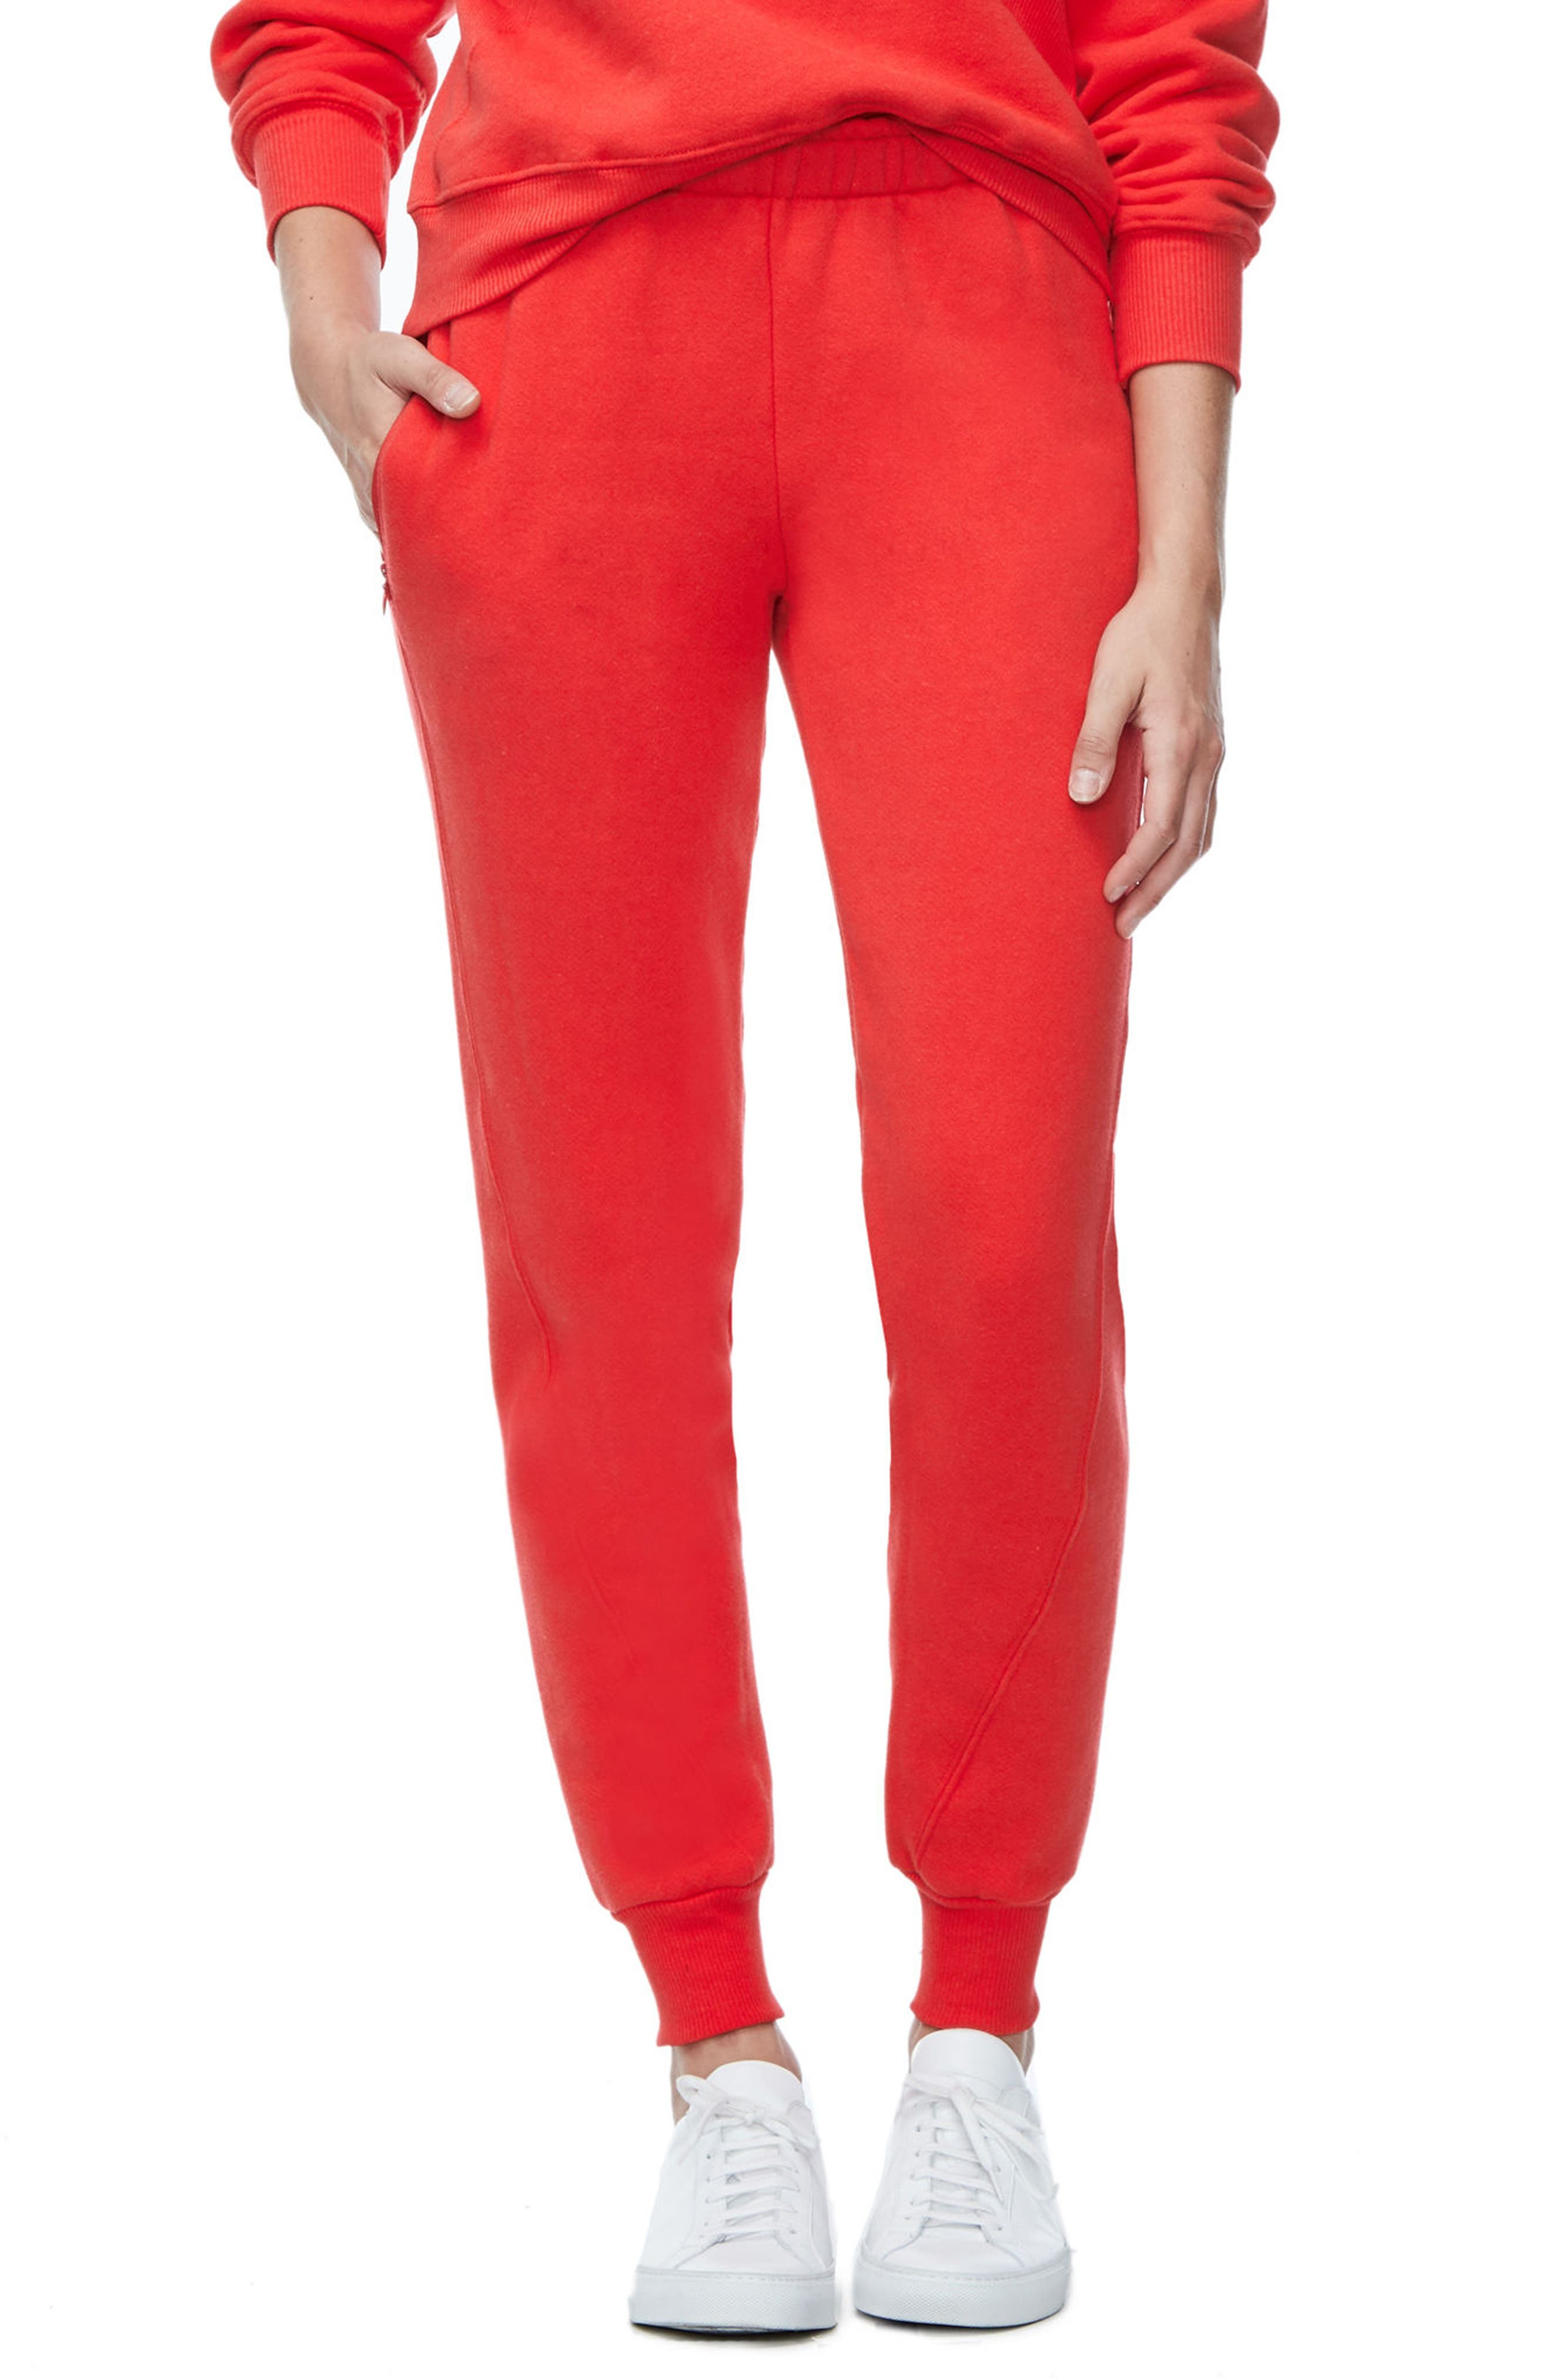 Good Sweats The Twisted Seam Pants,                             Alternate thumbnail 6, color,